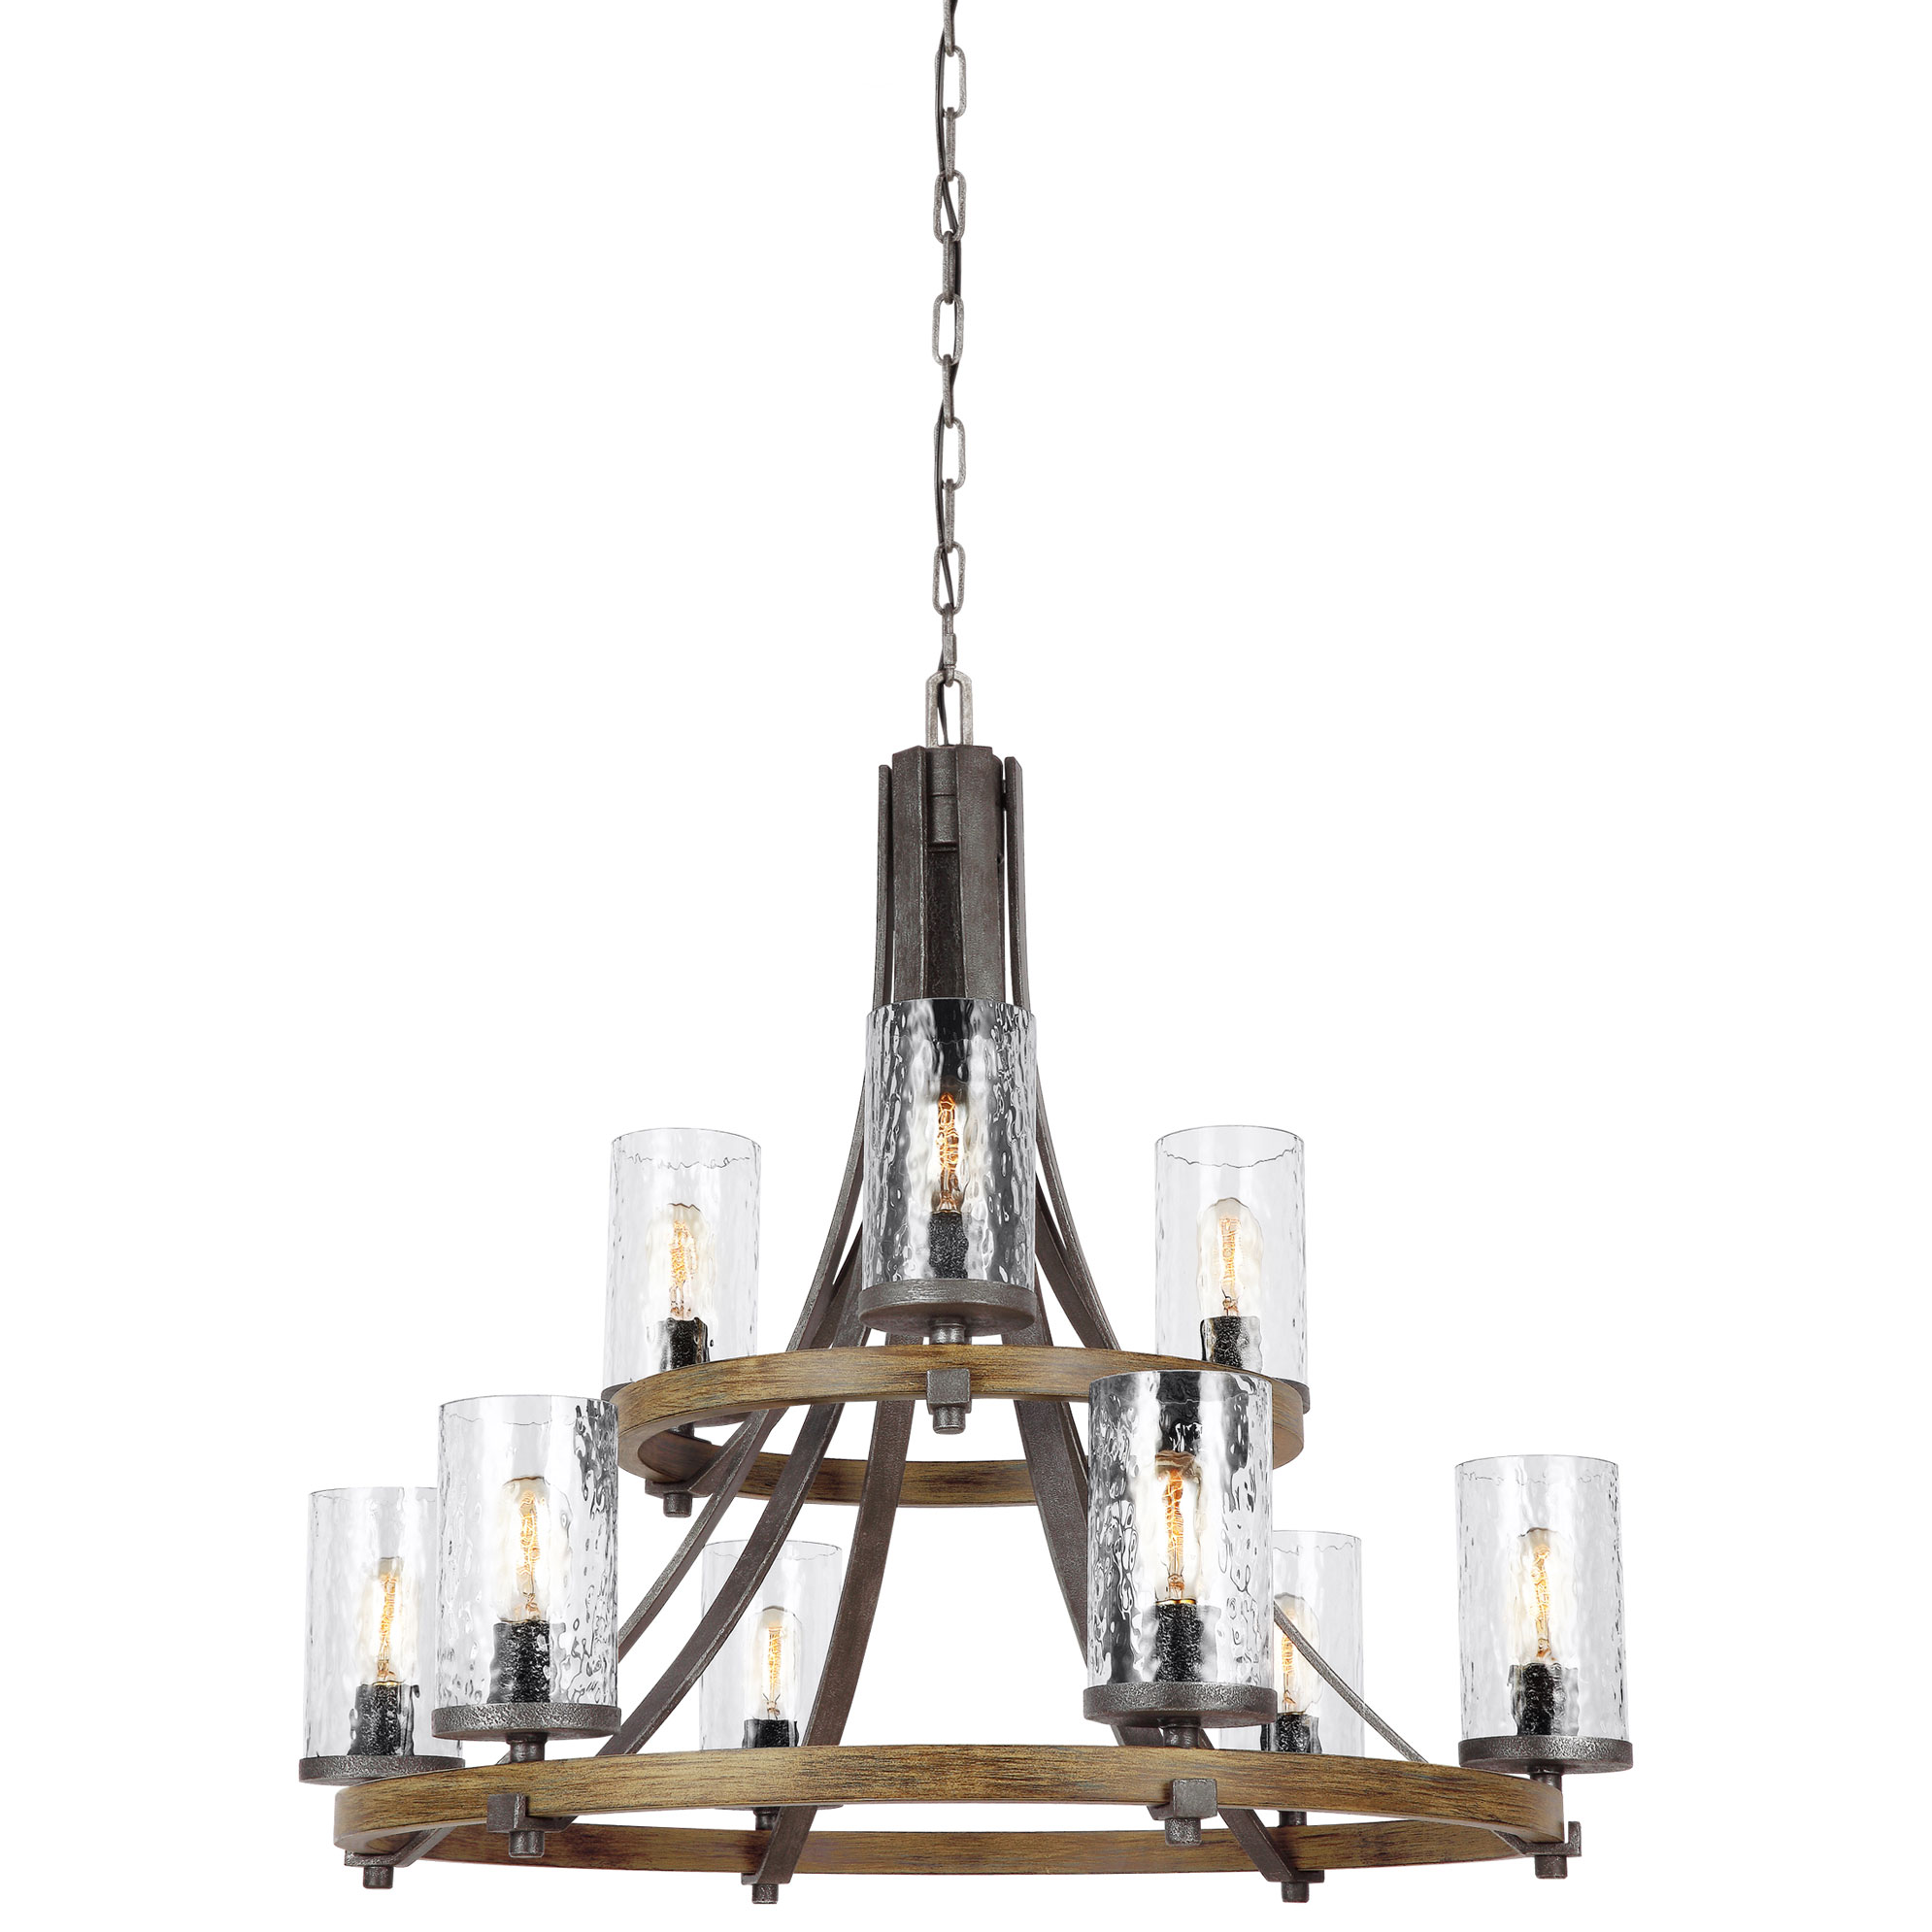 Two tier chandelier by feiss f31359dwksgm angelo two tier chandelier by feiss f31359dwksgm arubaitofo Image collections